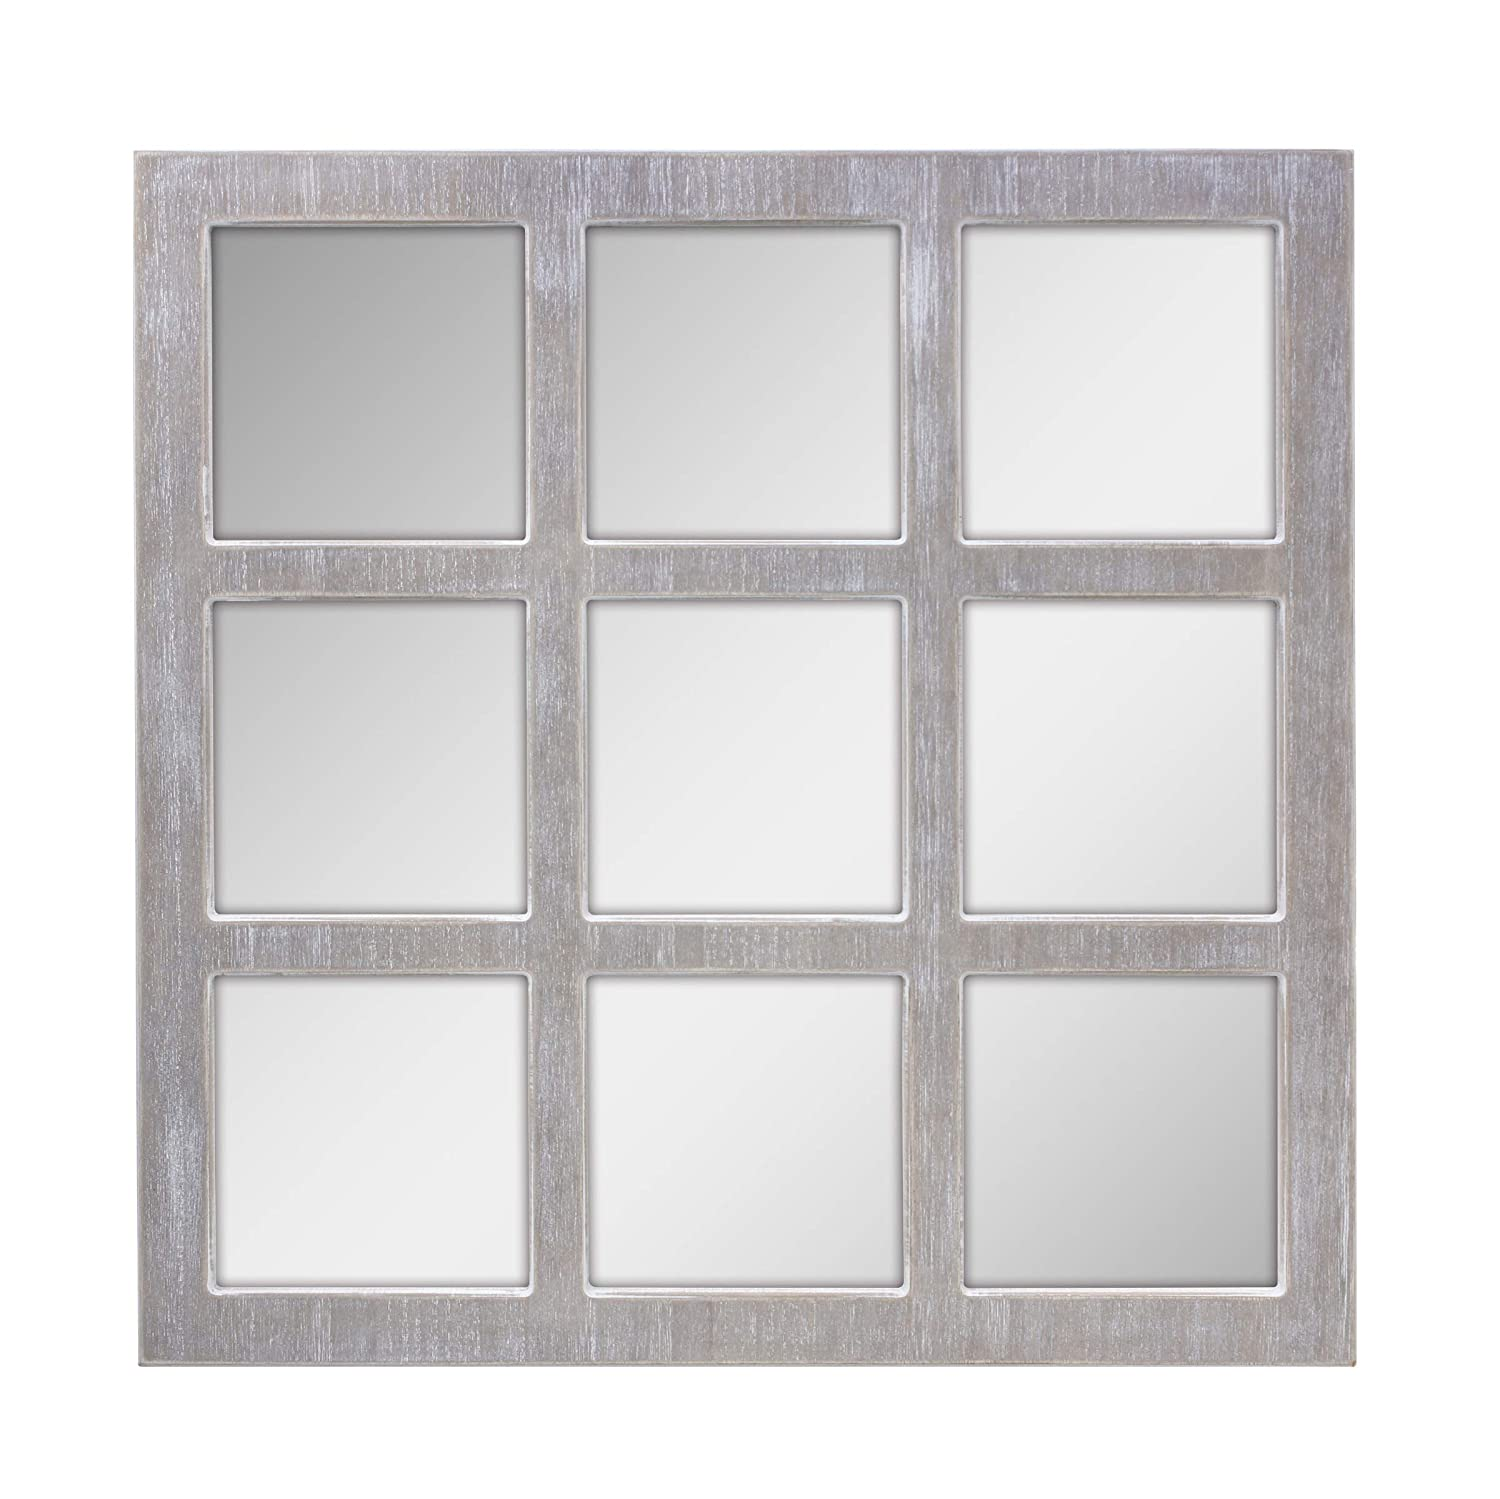 Stonebriar Square Rustic 9 Panel Window Pane Hanging Wall Mirror with Worn White Finish and Attached Mounting Brackets, Decorative Farmhouse and Coastal Home Decor Accents